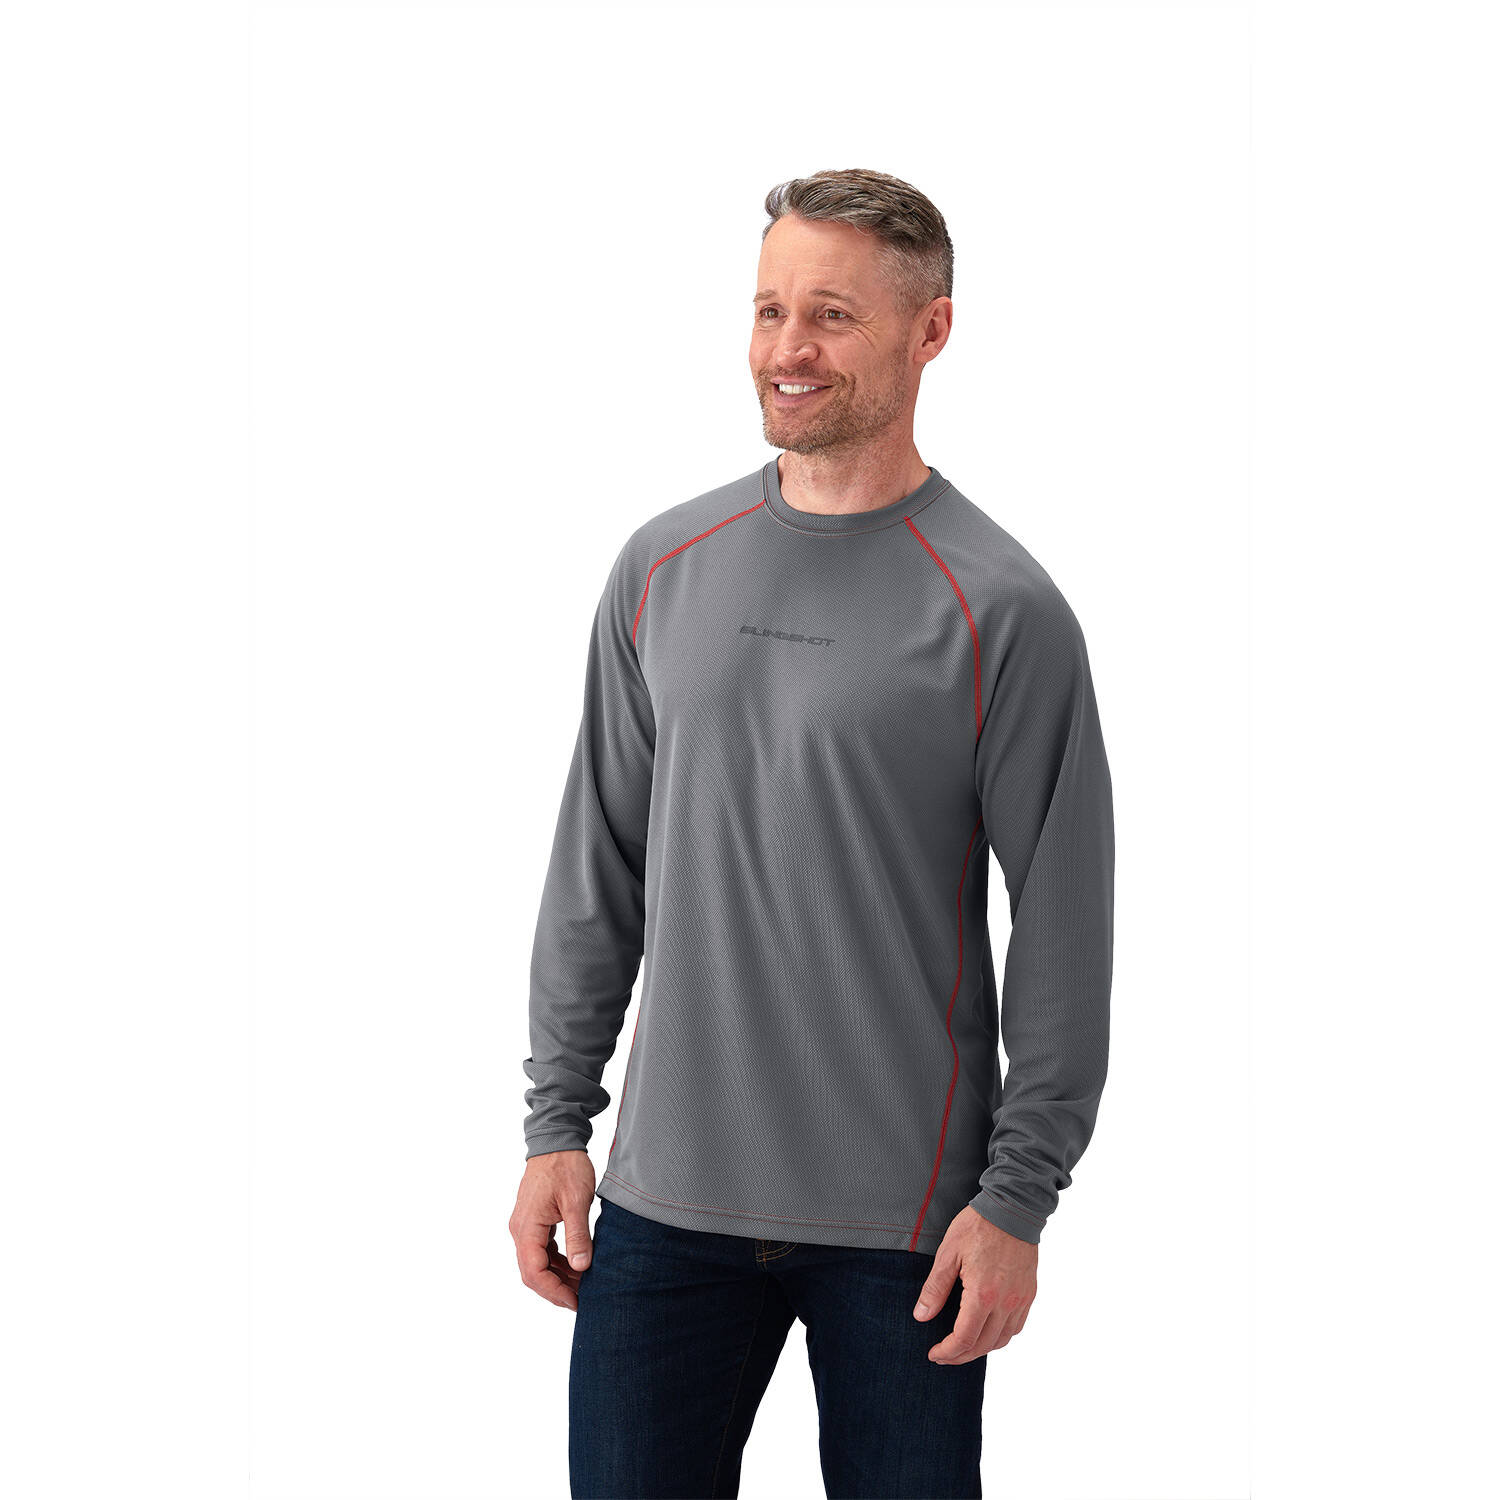 Men's Cooling Long Sleeve Shirt - Gray/Red